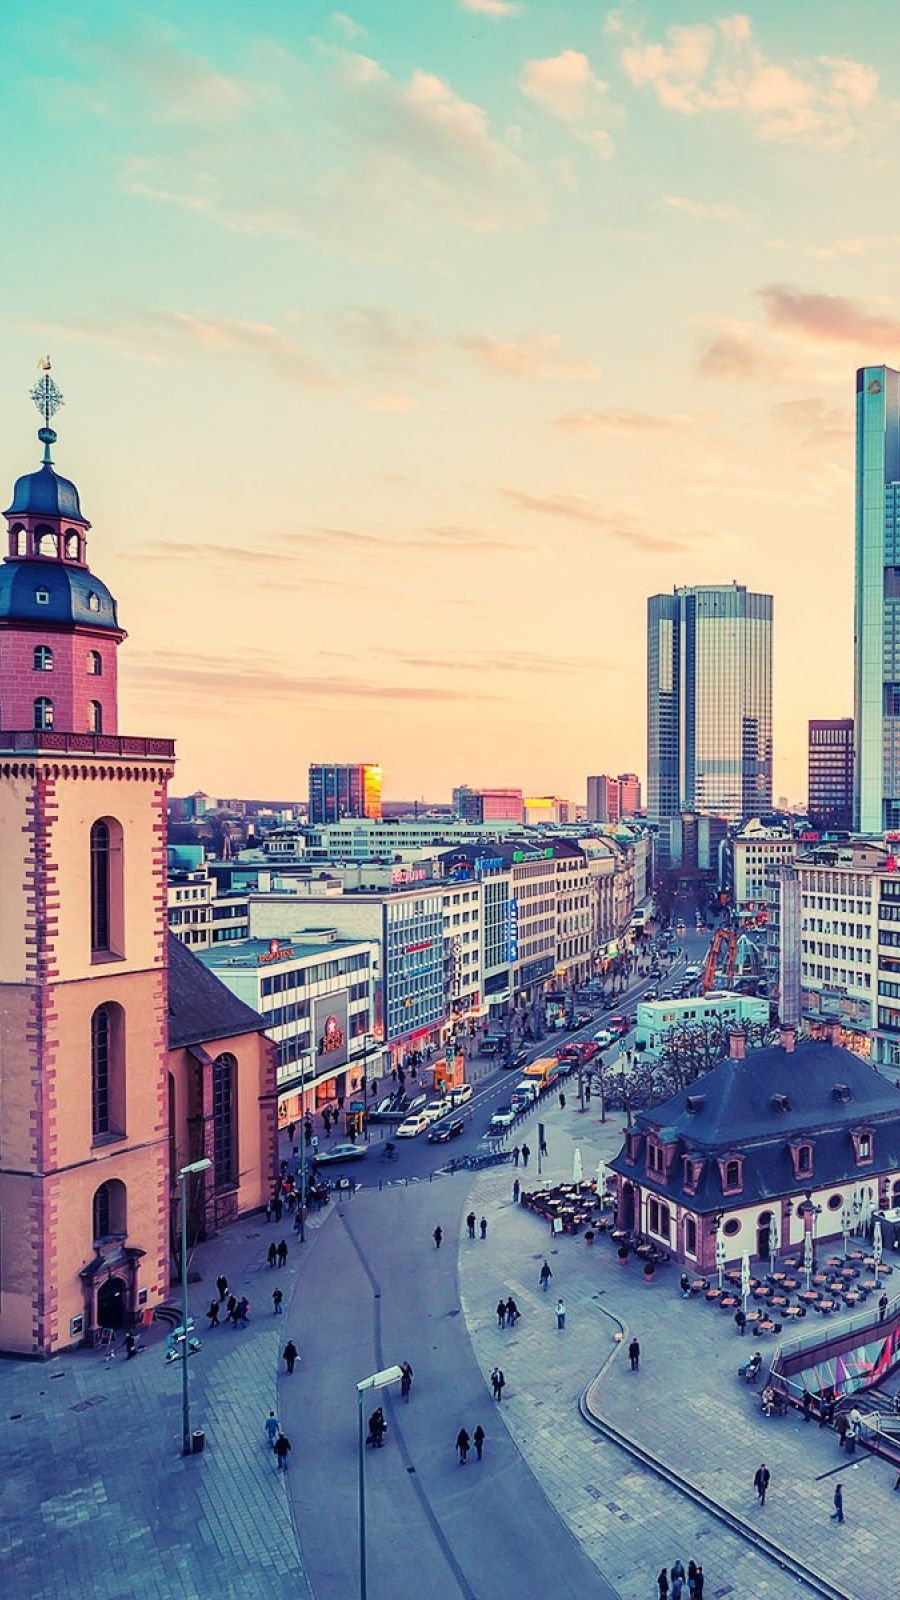 900x1600 Germany Cityscapes Mobile Wallpaper - Mobiles Wall